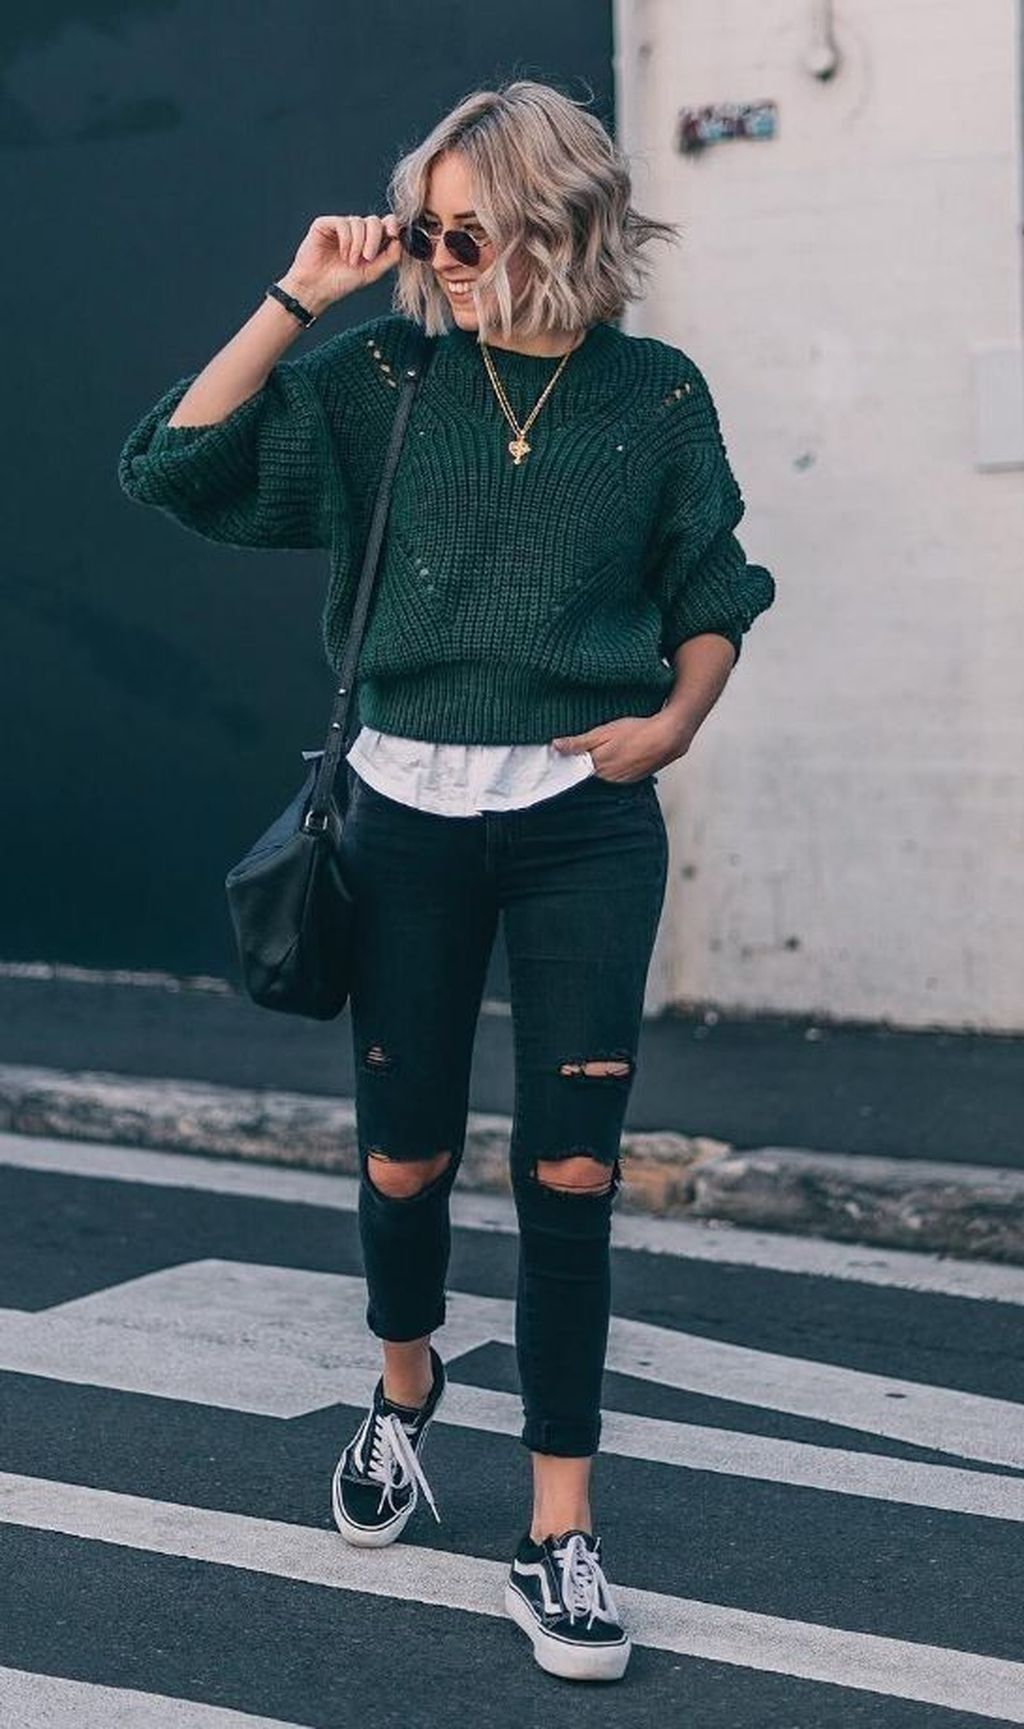 Photo of 20+ Pretty Fashion Outfit Ideas For Women To Try Now